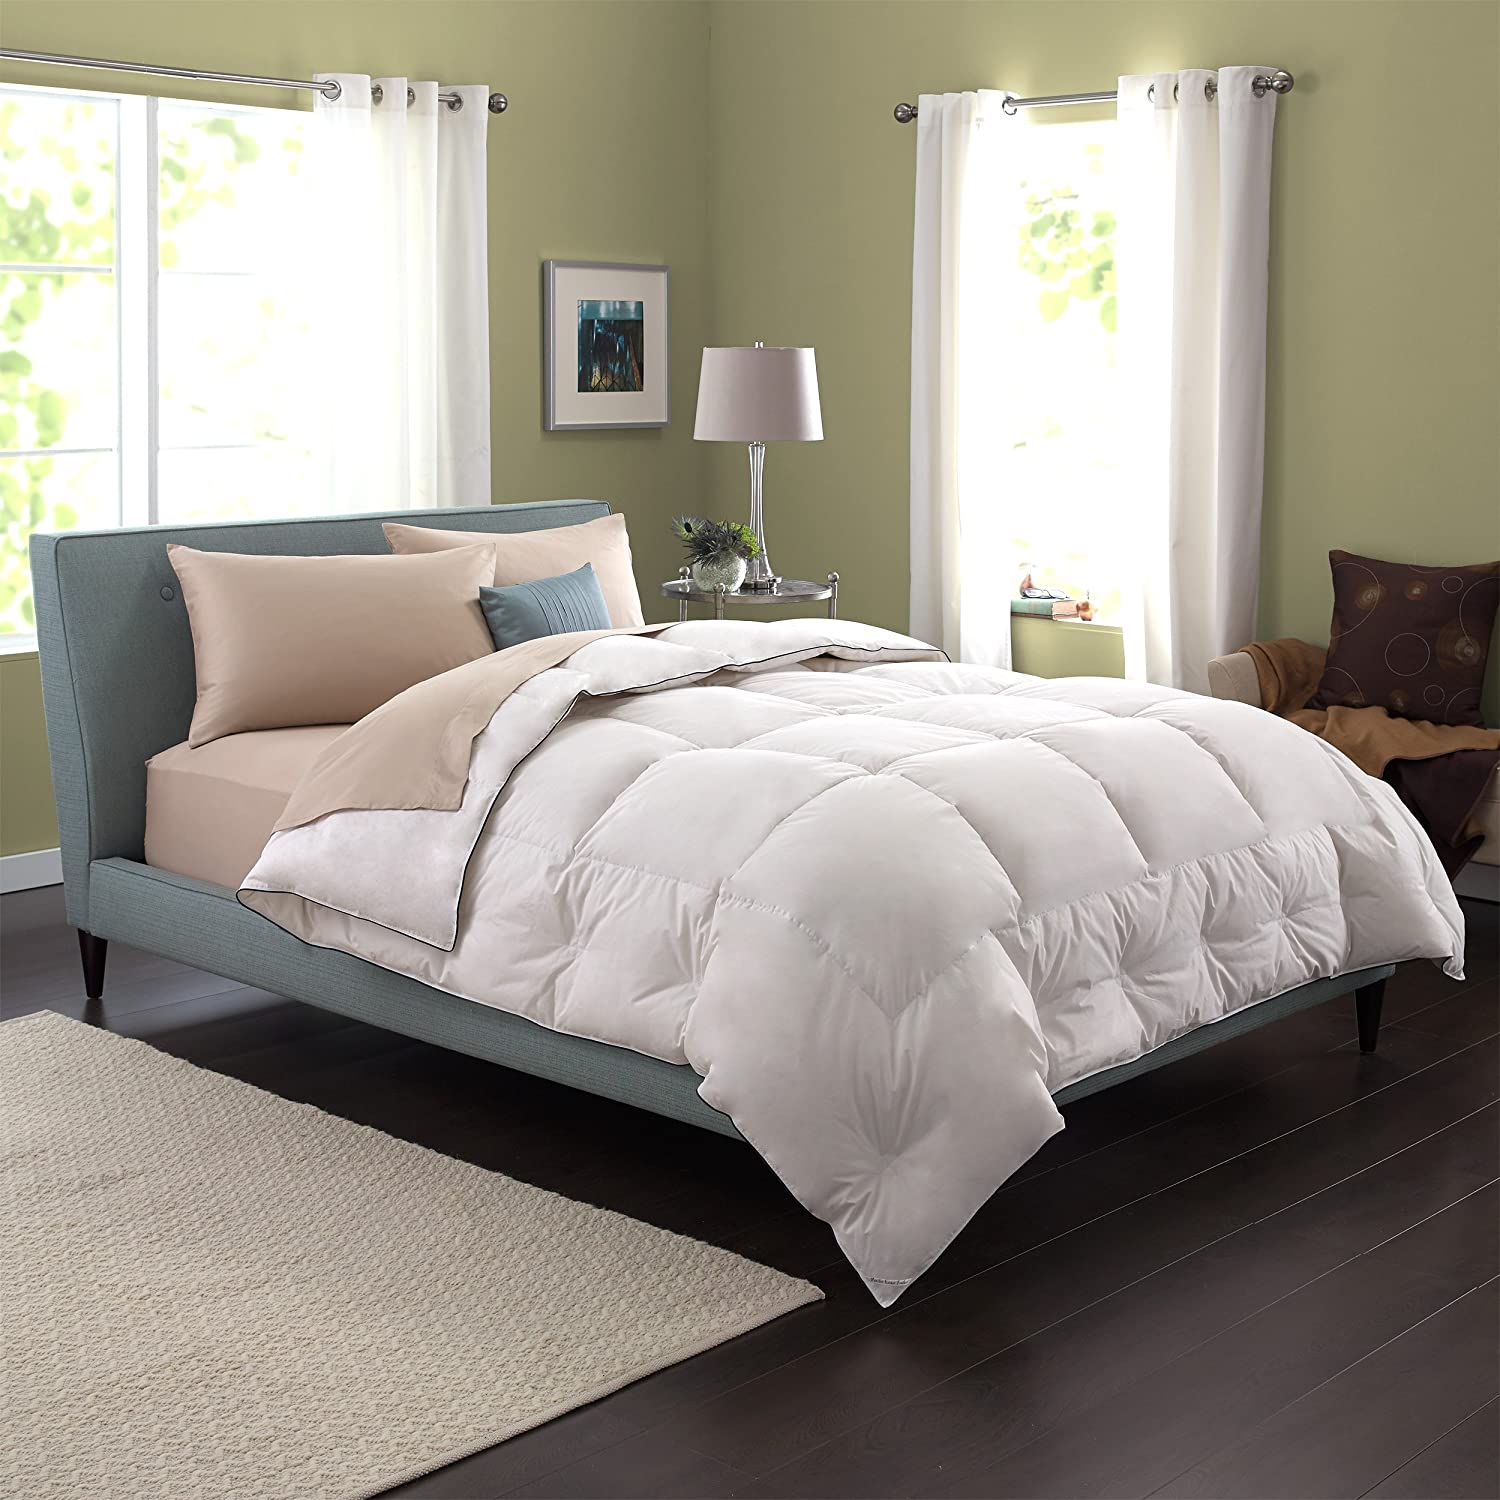 textiles comforters sets grey warm the and best impressive home comforter